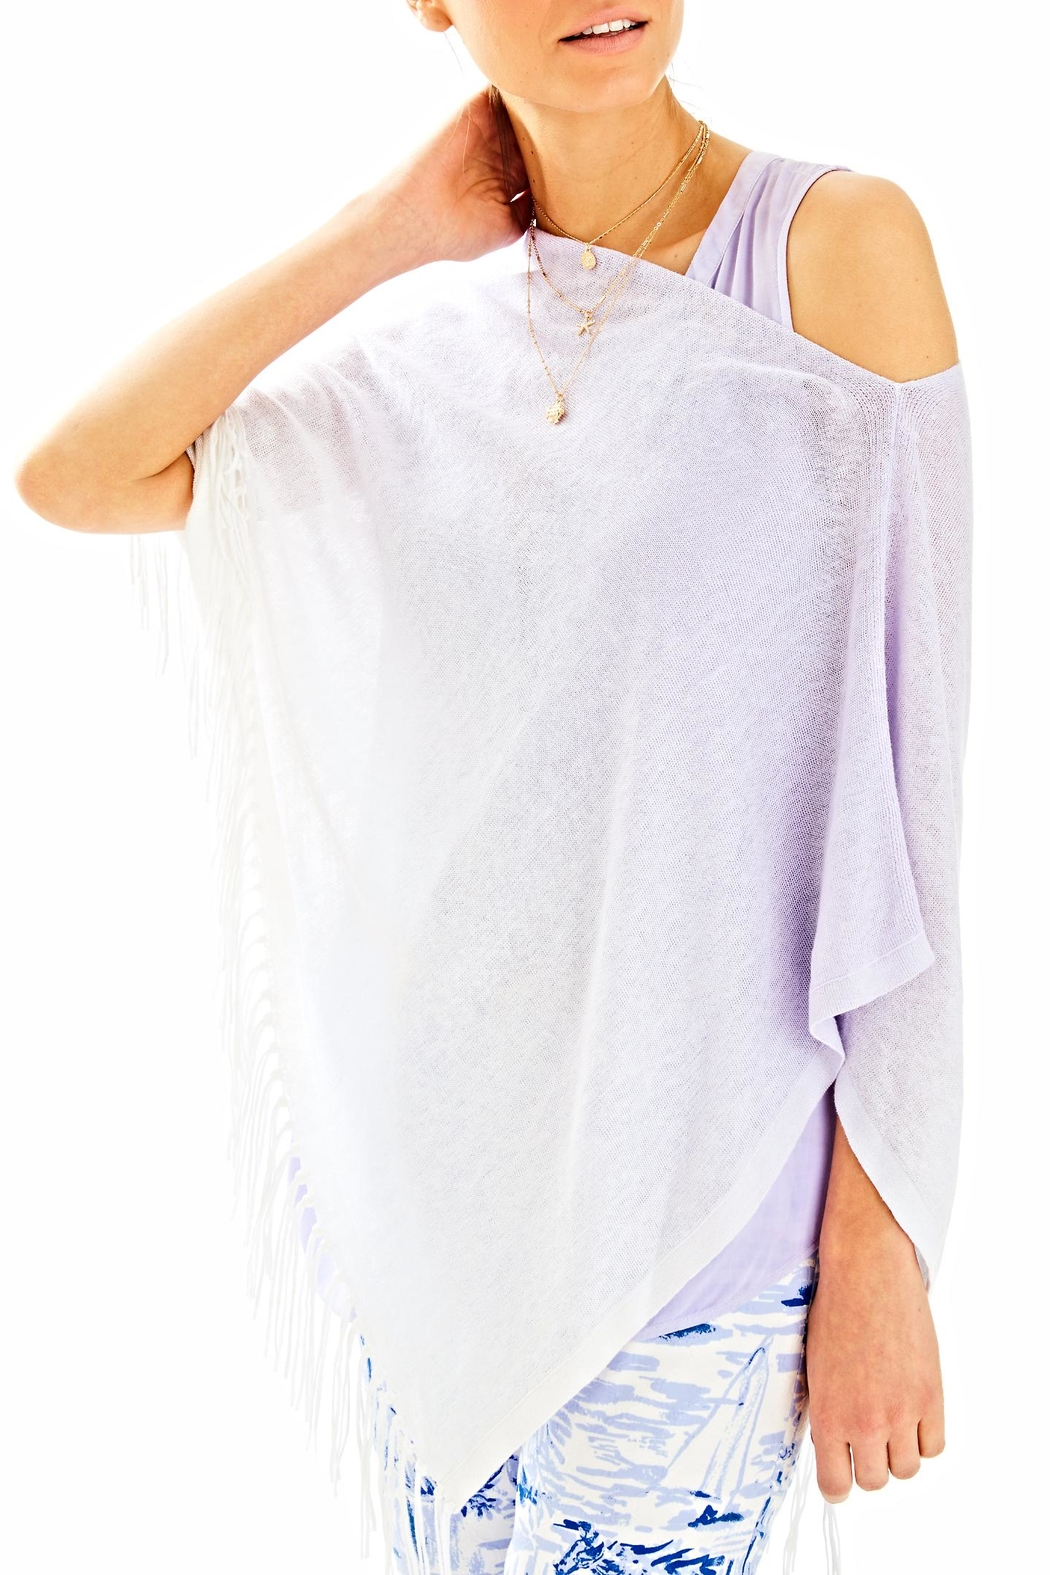 Lilly Pulitzer Marin Ombre Sweater Wrap From Sandestin